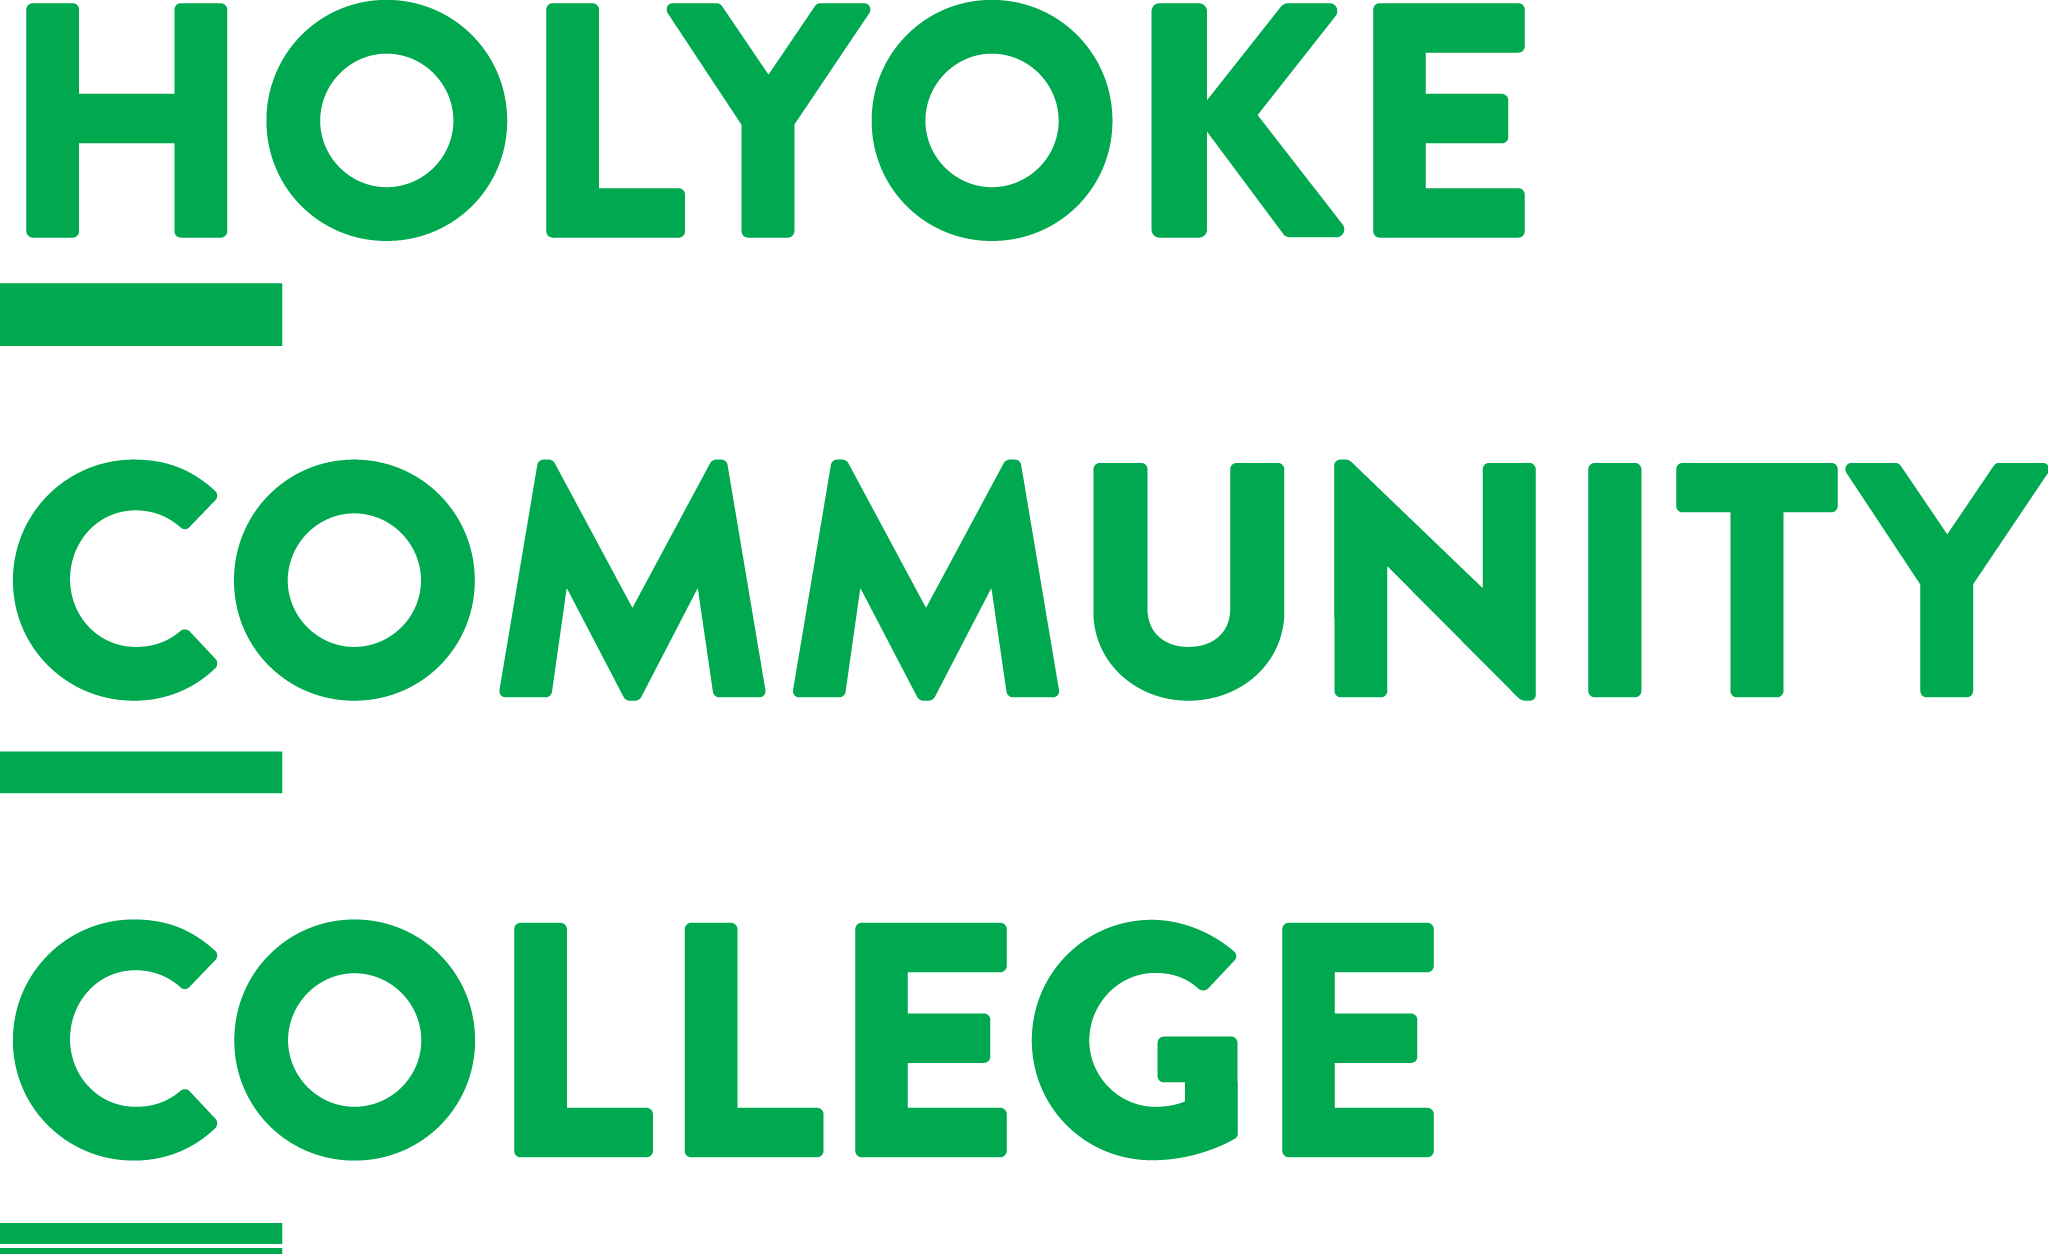 holyoke community college holyoke community college